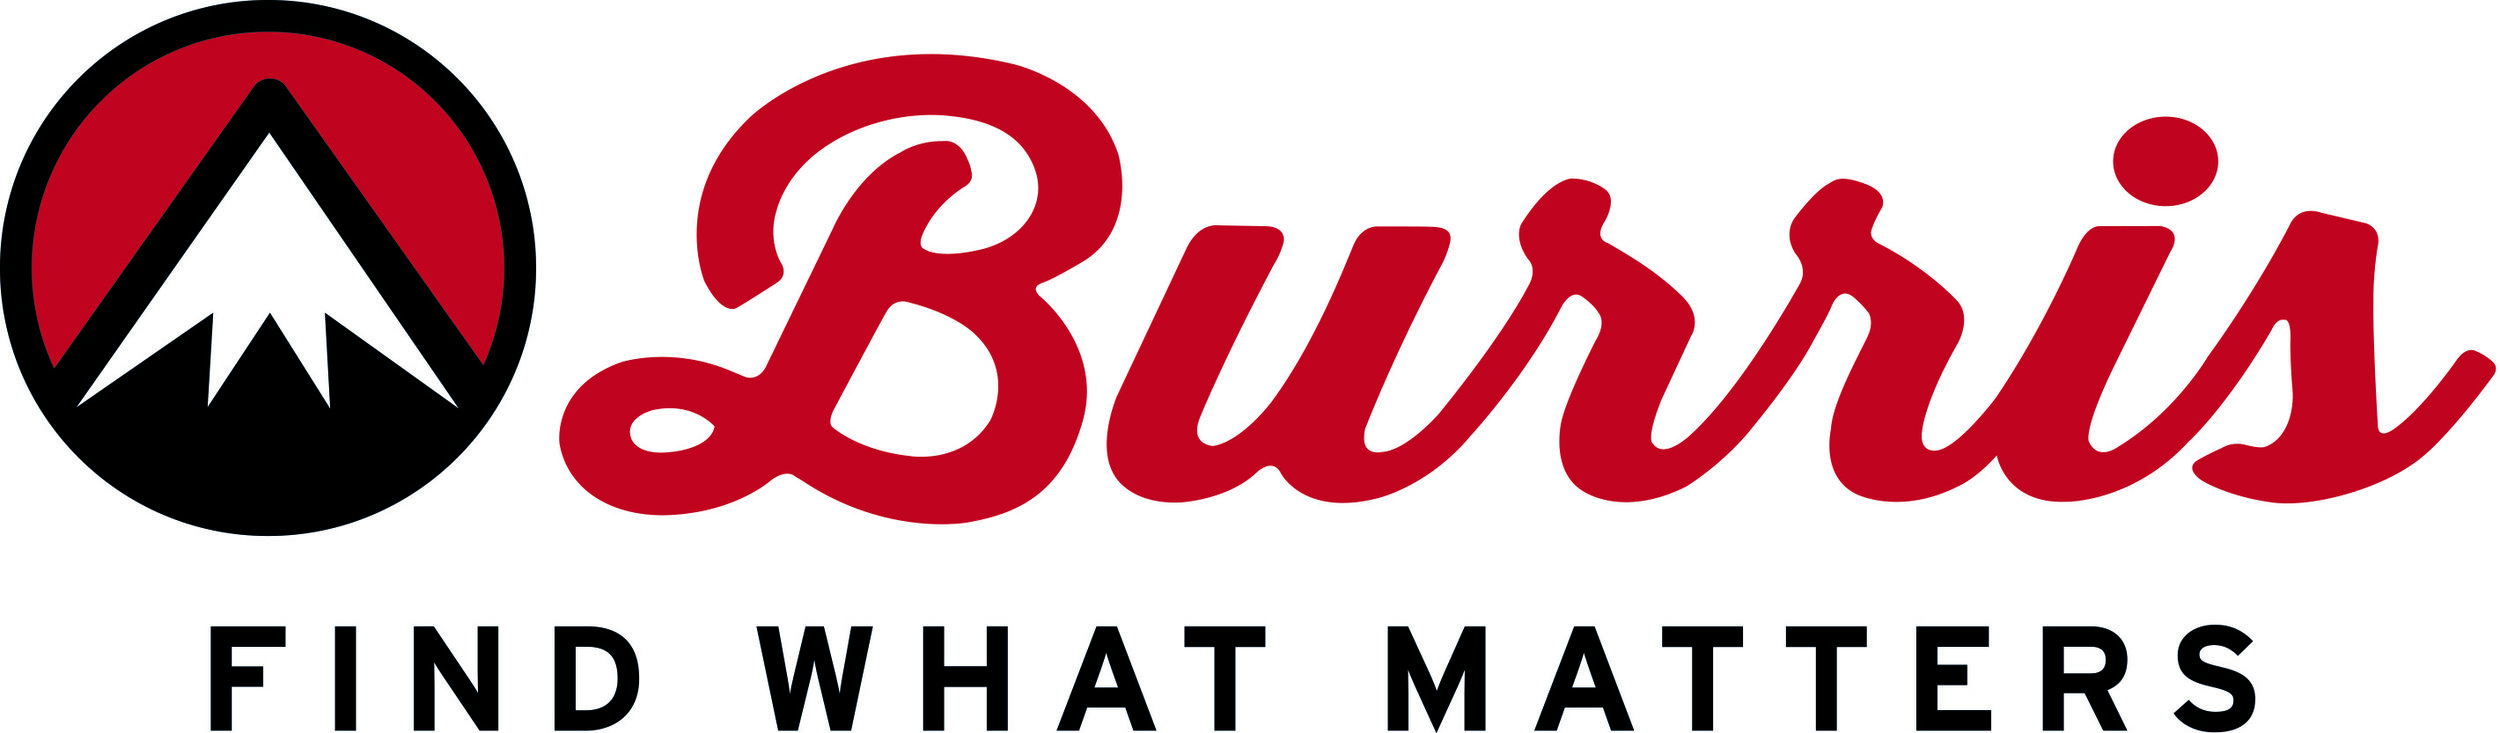 Gold Sponsor - Burris Optics has been a long-time supporter of Right to Read and IRCNOCO. We are incredibly grateful to their company for its history to supporting incredible nonprofits in the Northern Colorado area. Click on the image to visit their website and support them!